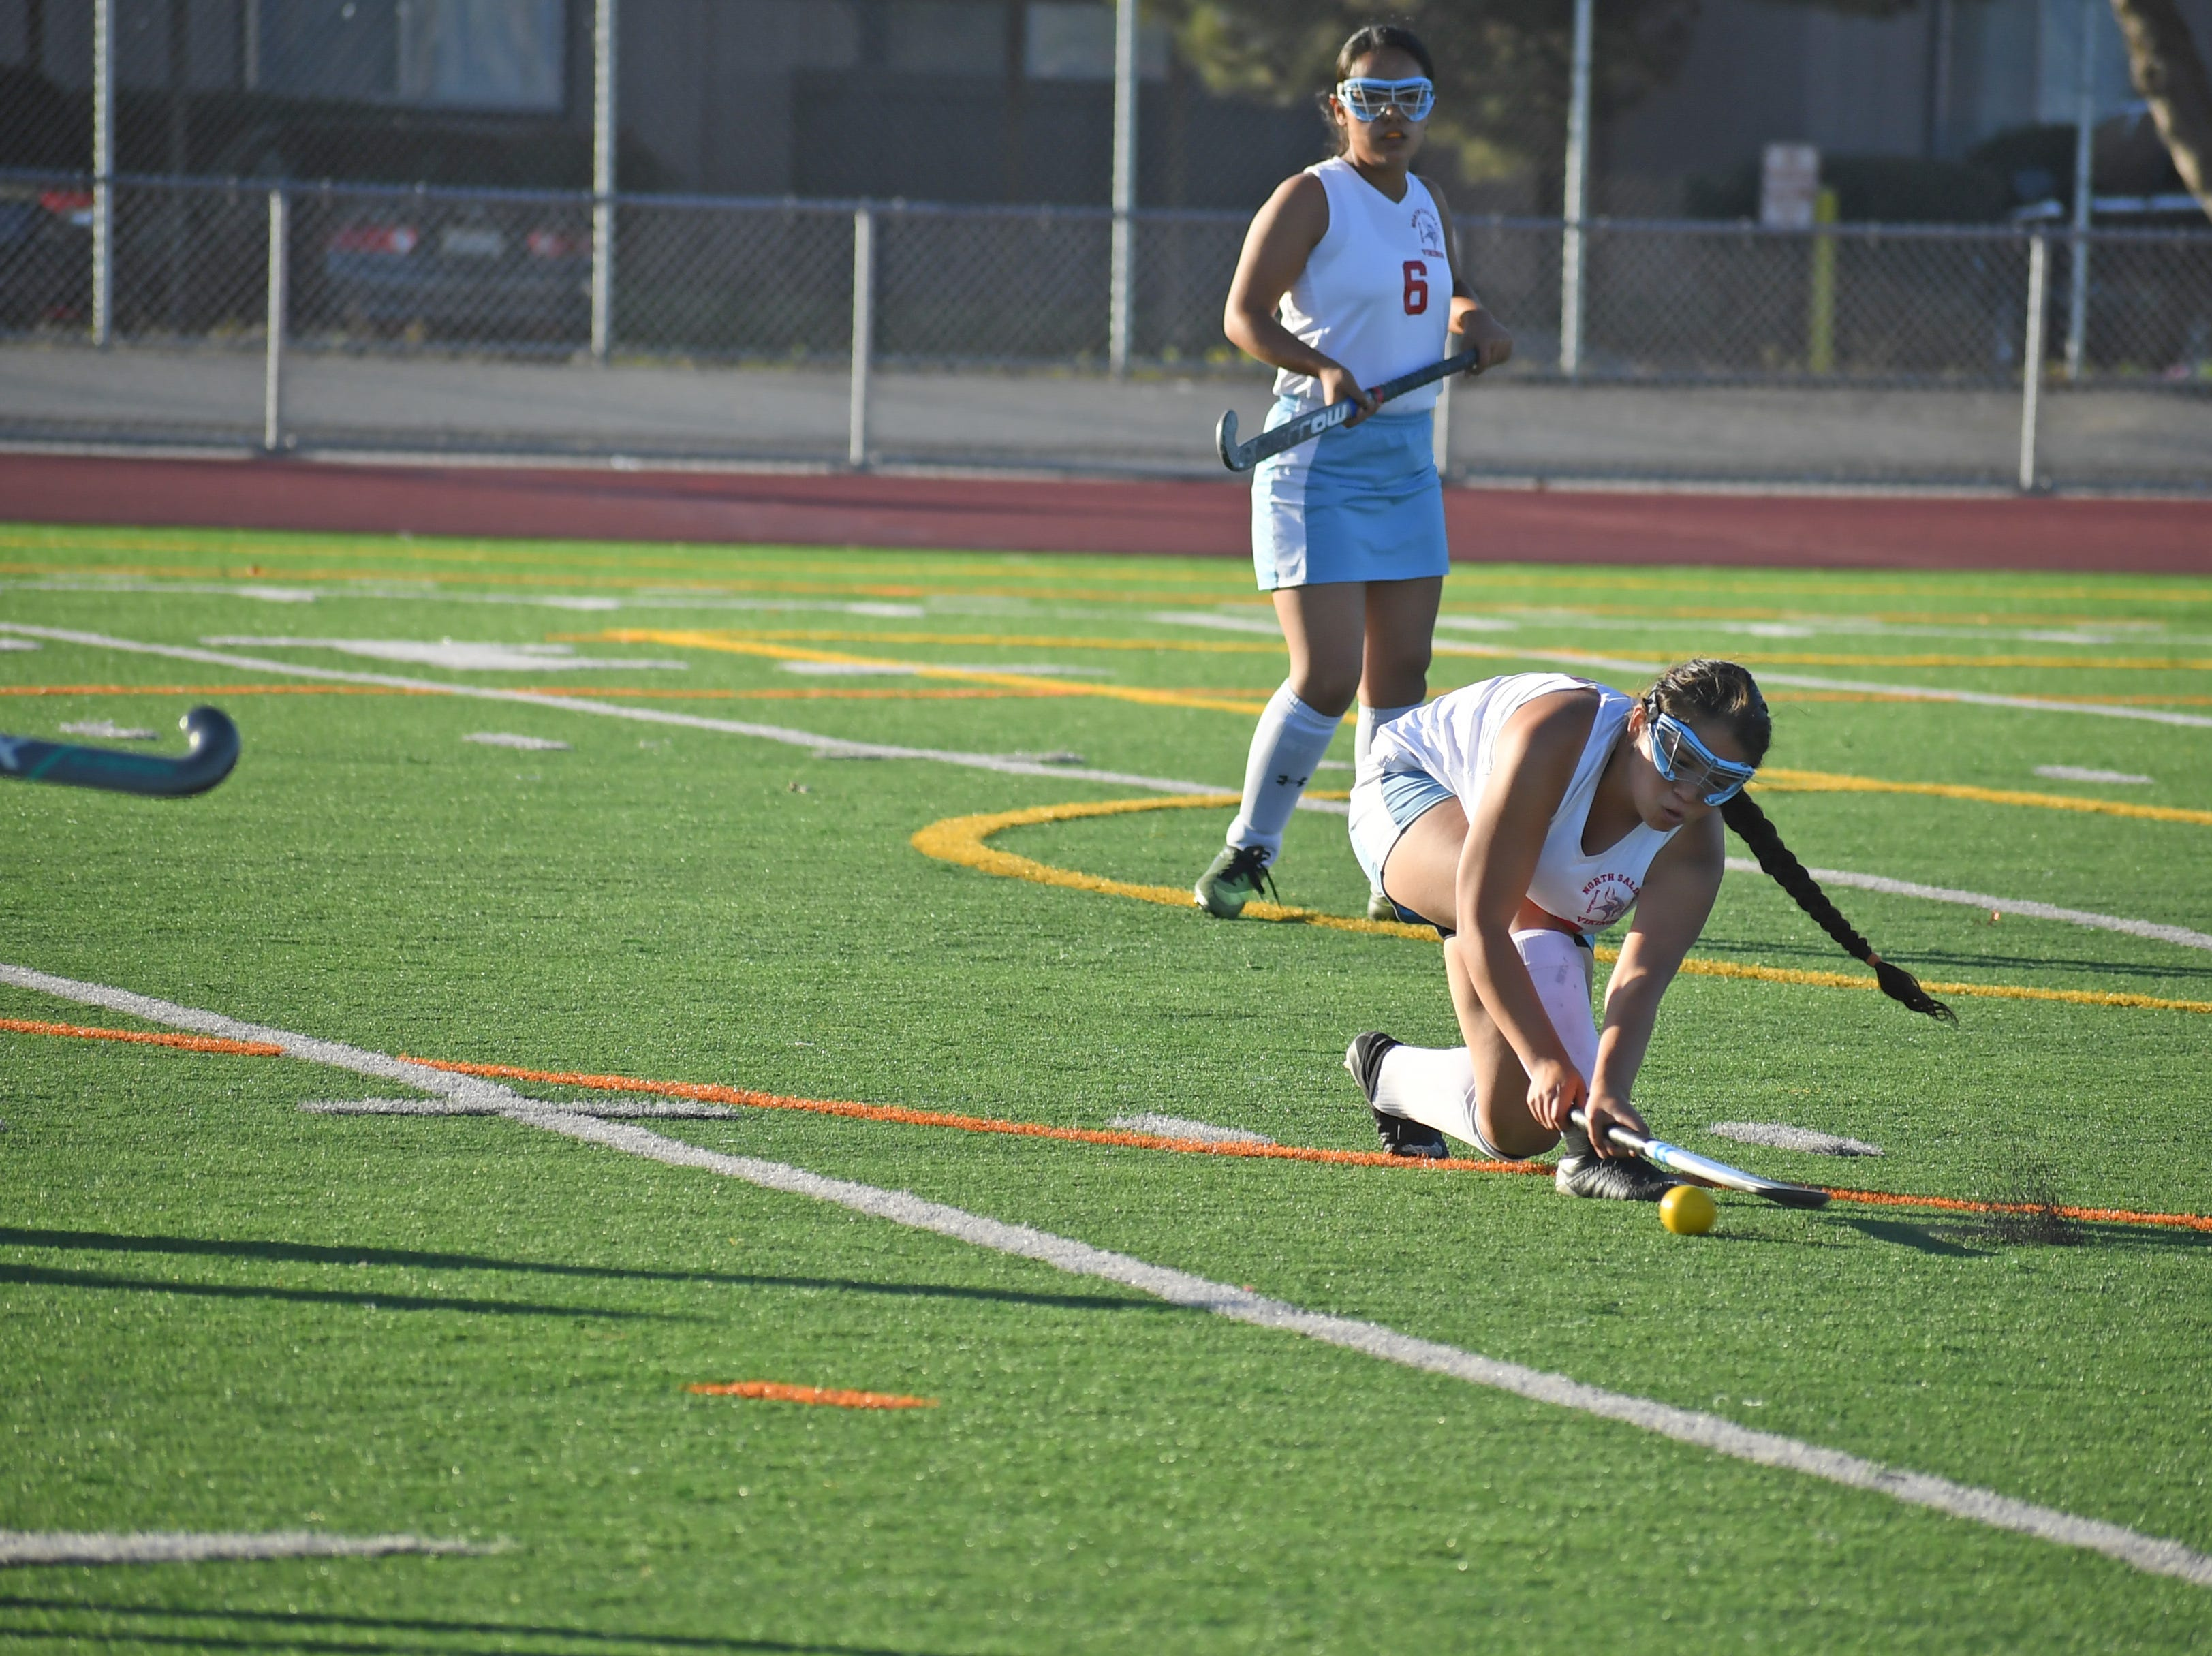 Sophomore Precious Eady (22) slides a pass to the right of goal following a shot by a Willow Glen forward.